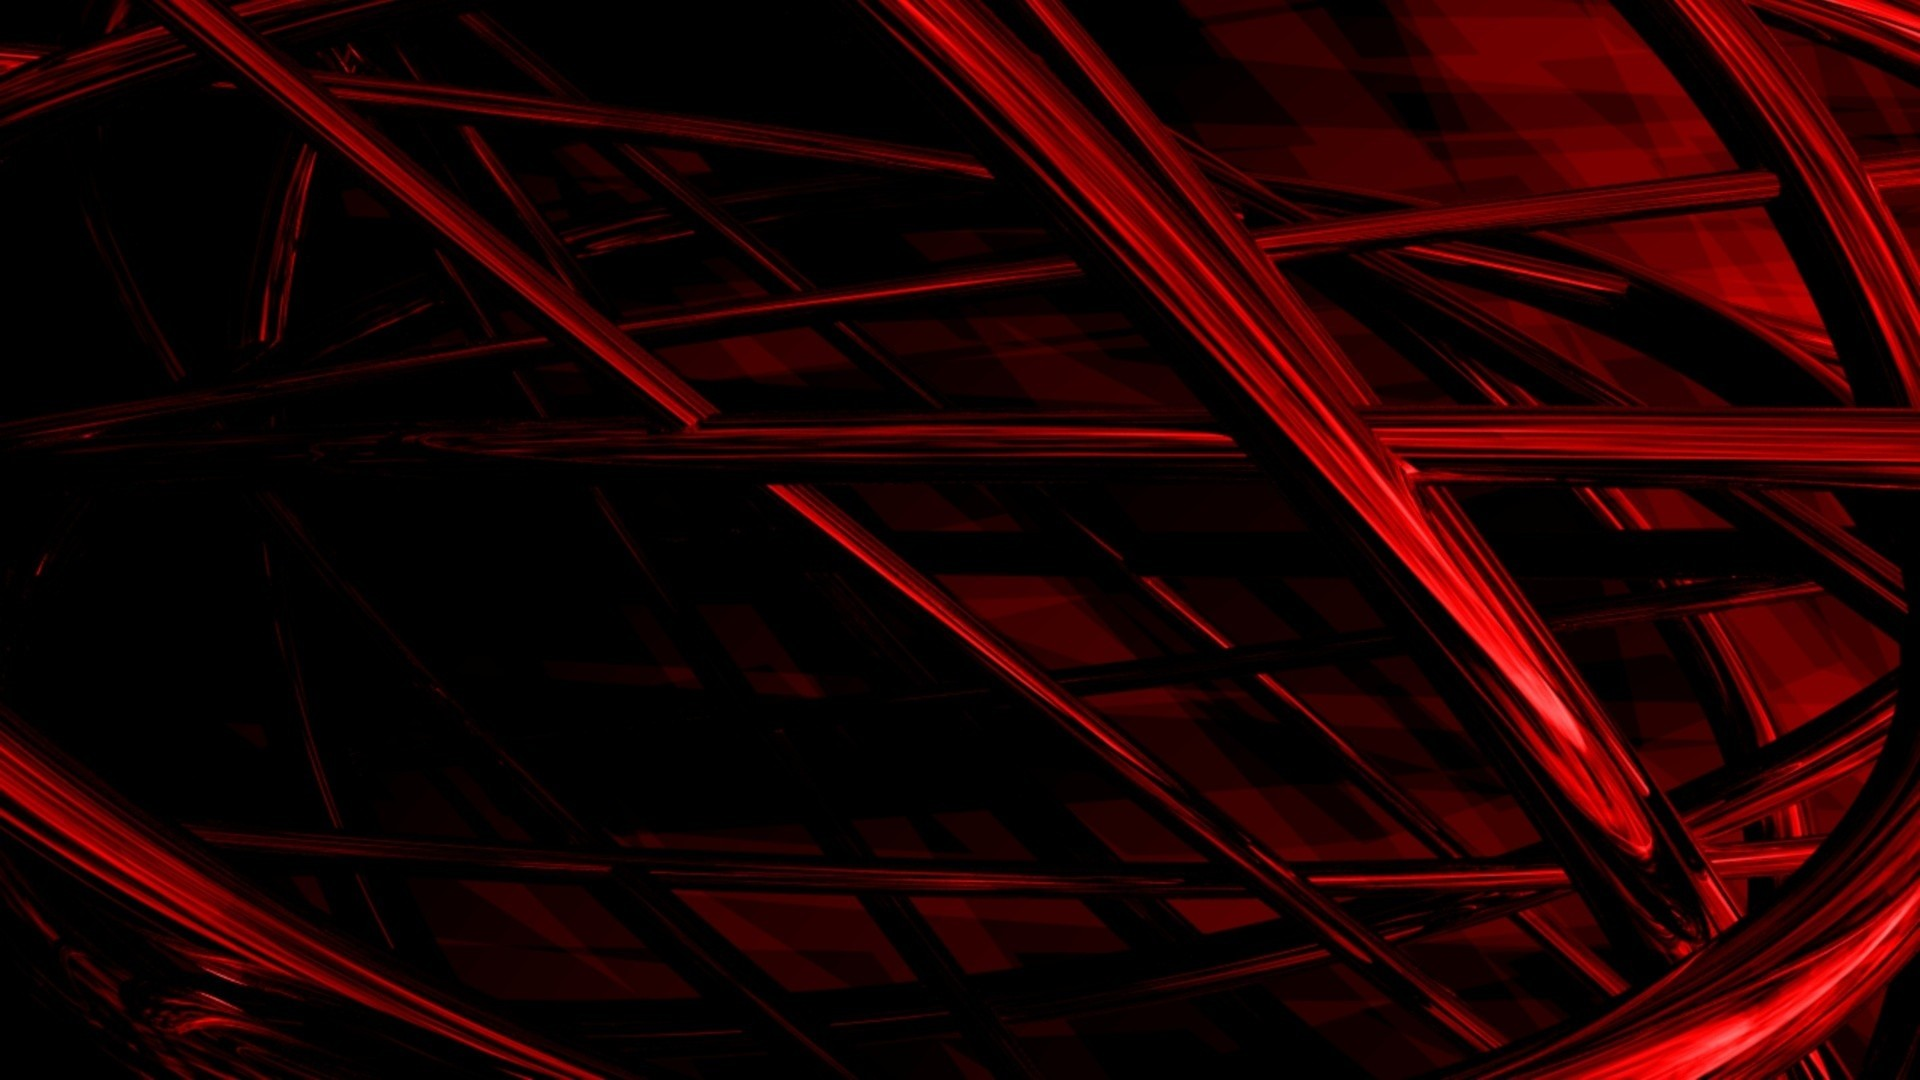 Black And Red Background Images Posted By John Mercado